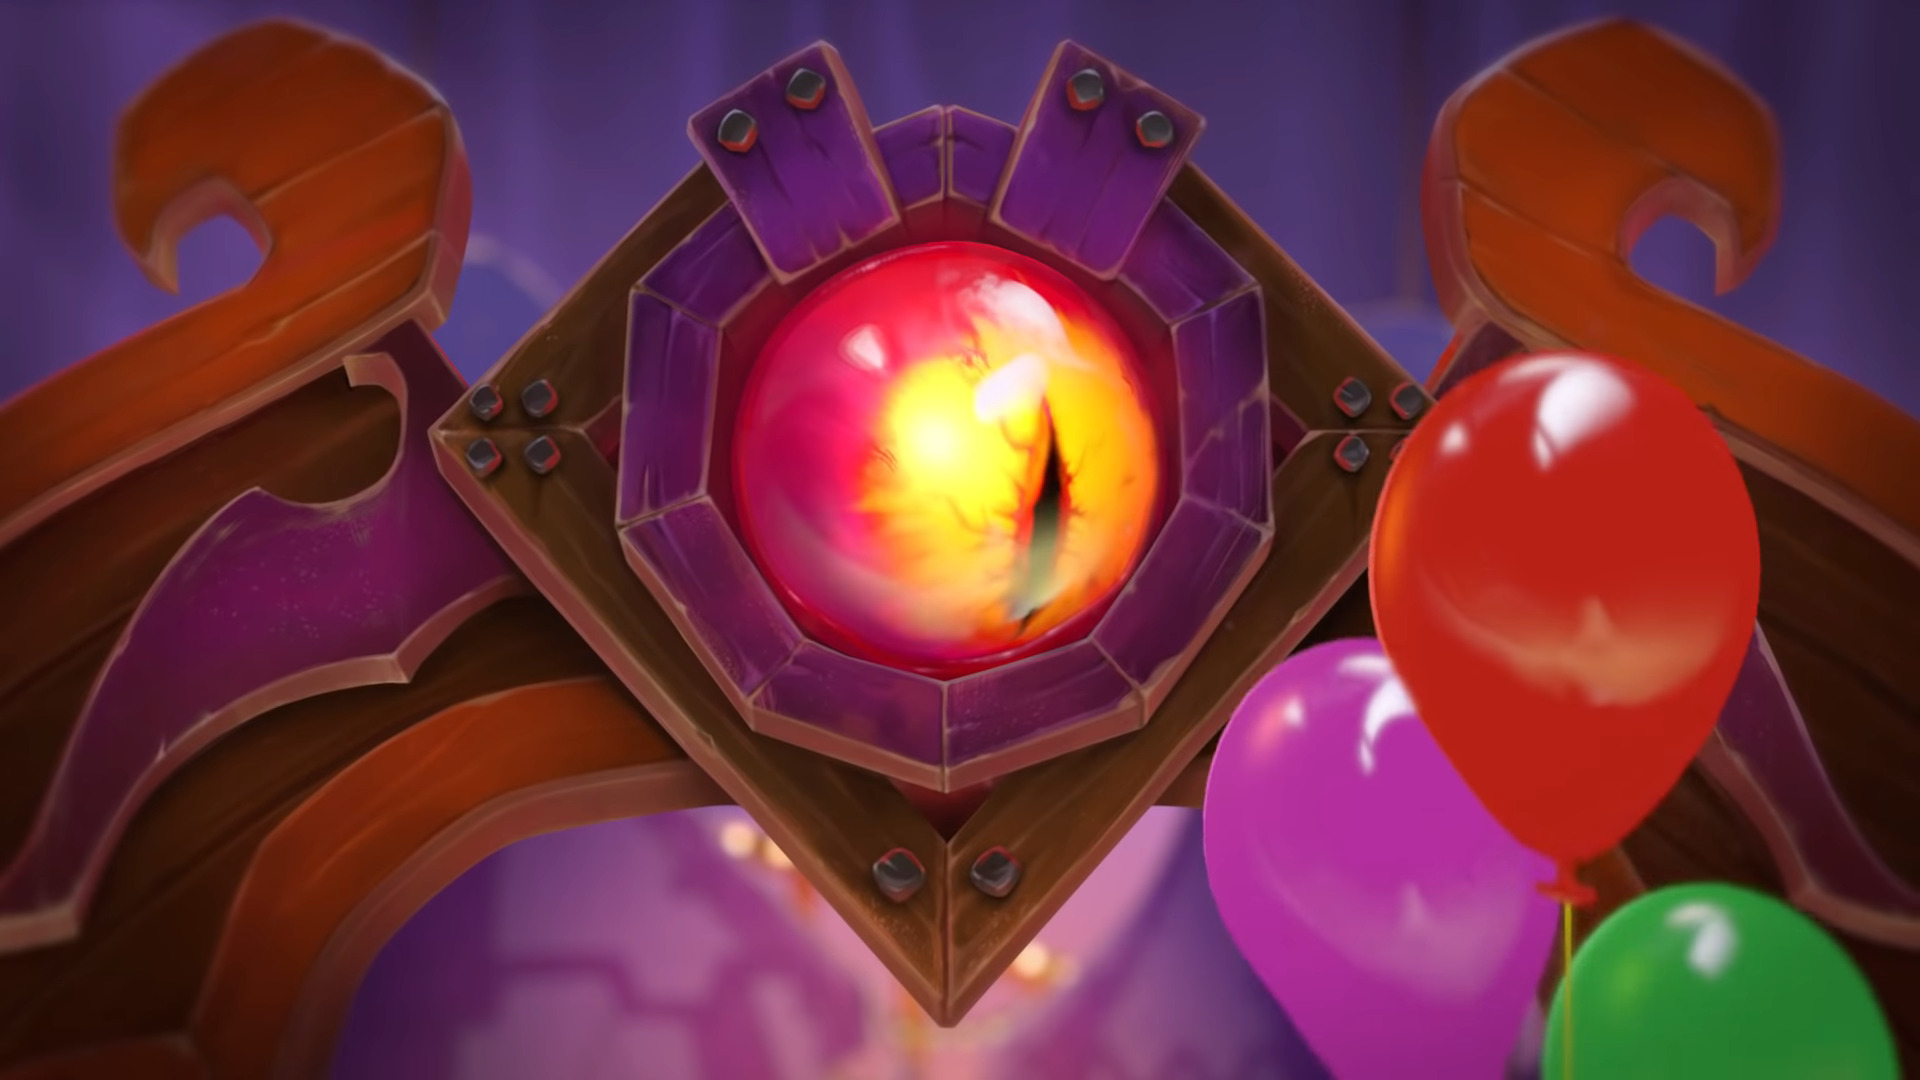 Blizzard Announces Its Fall Reveal Stream For Hearthstone On October 22, Twitch Drops For Free Packs Is Active